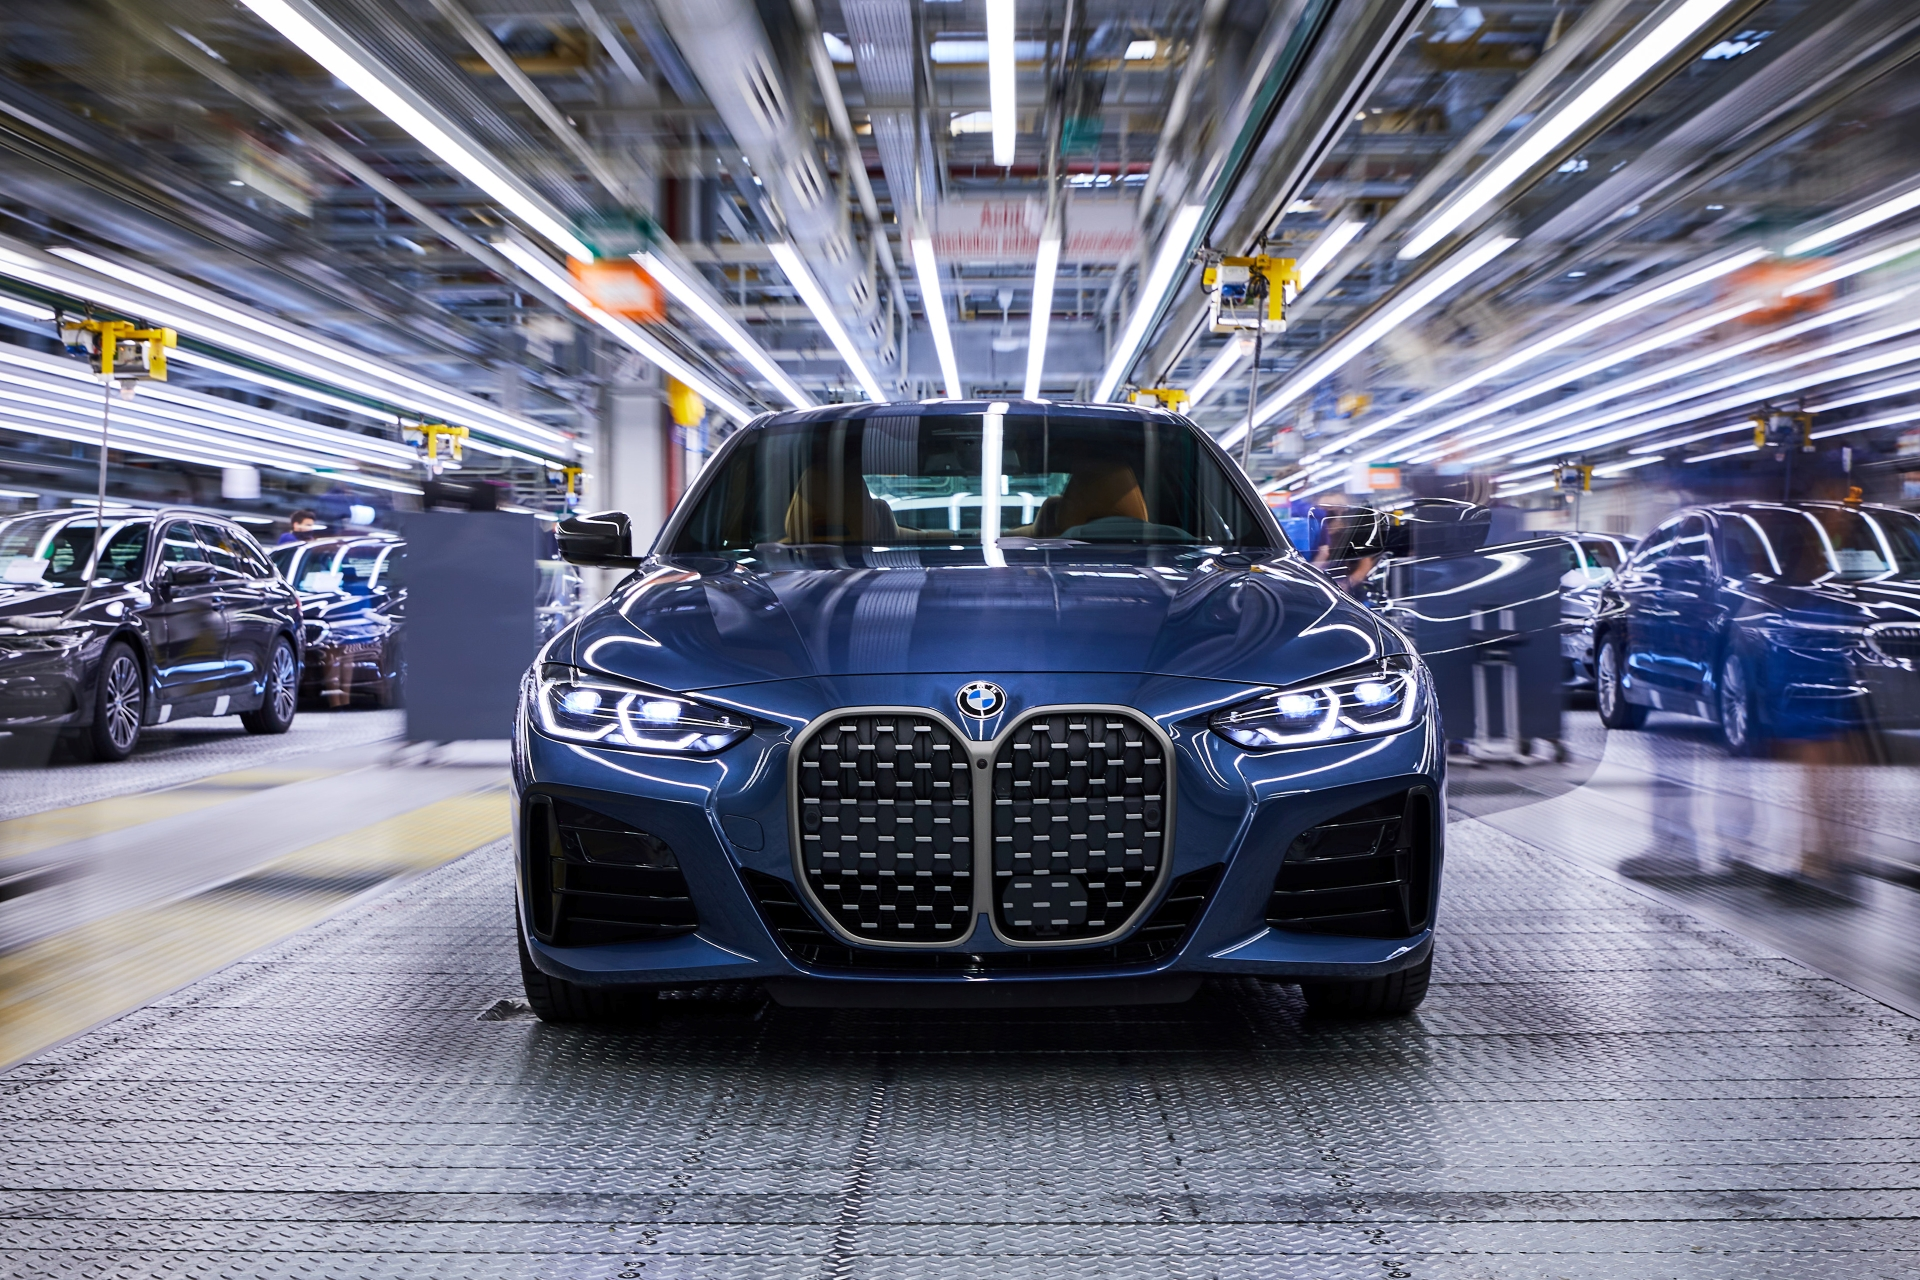 BMW starts G22 4 Series production at Dingolfing 26